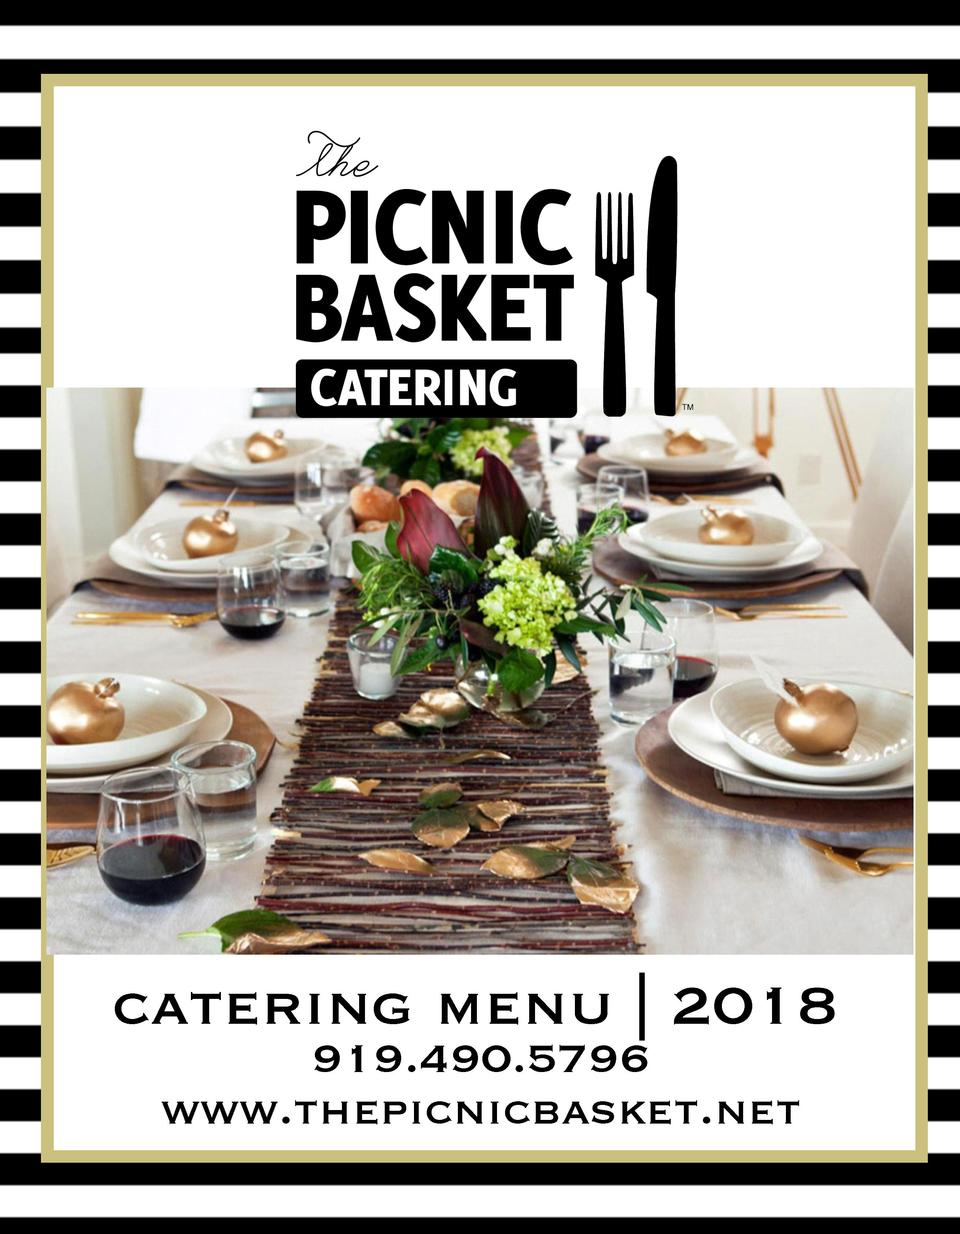 catering menu   2018 919.490.5796 www.thepicnicbasket.net